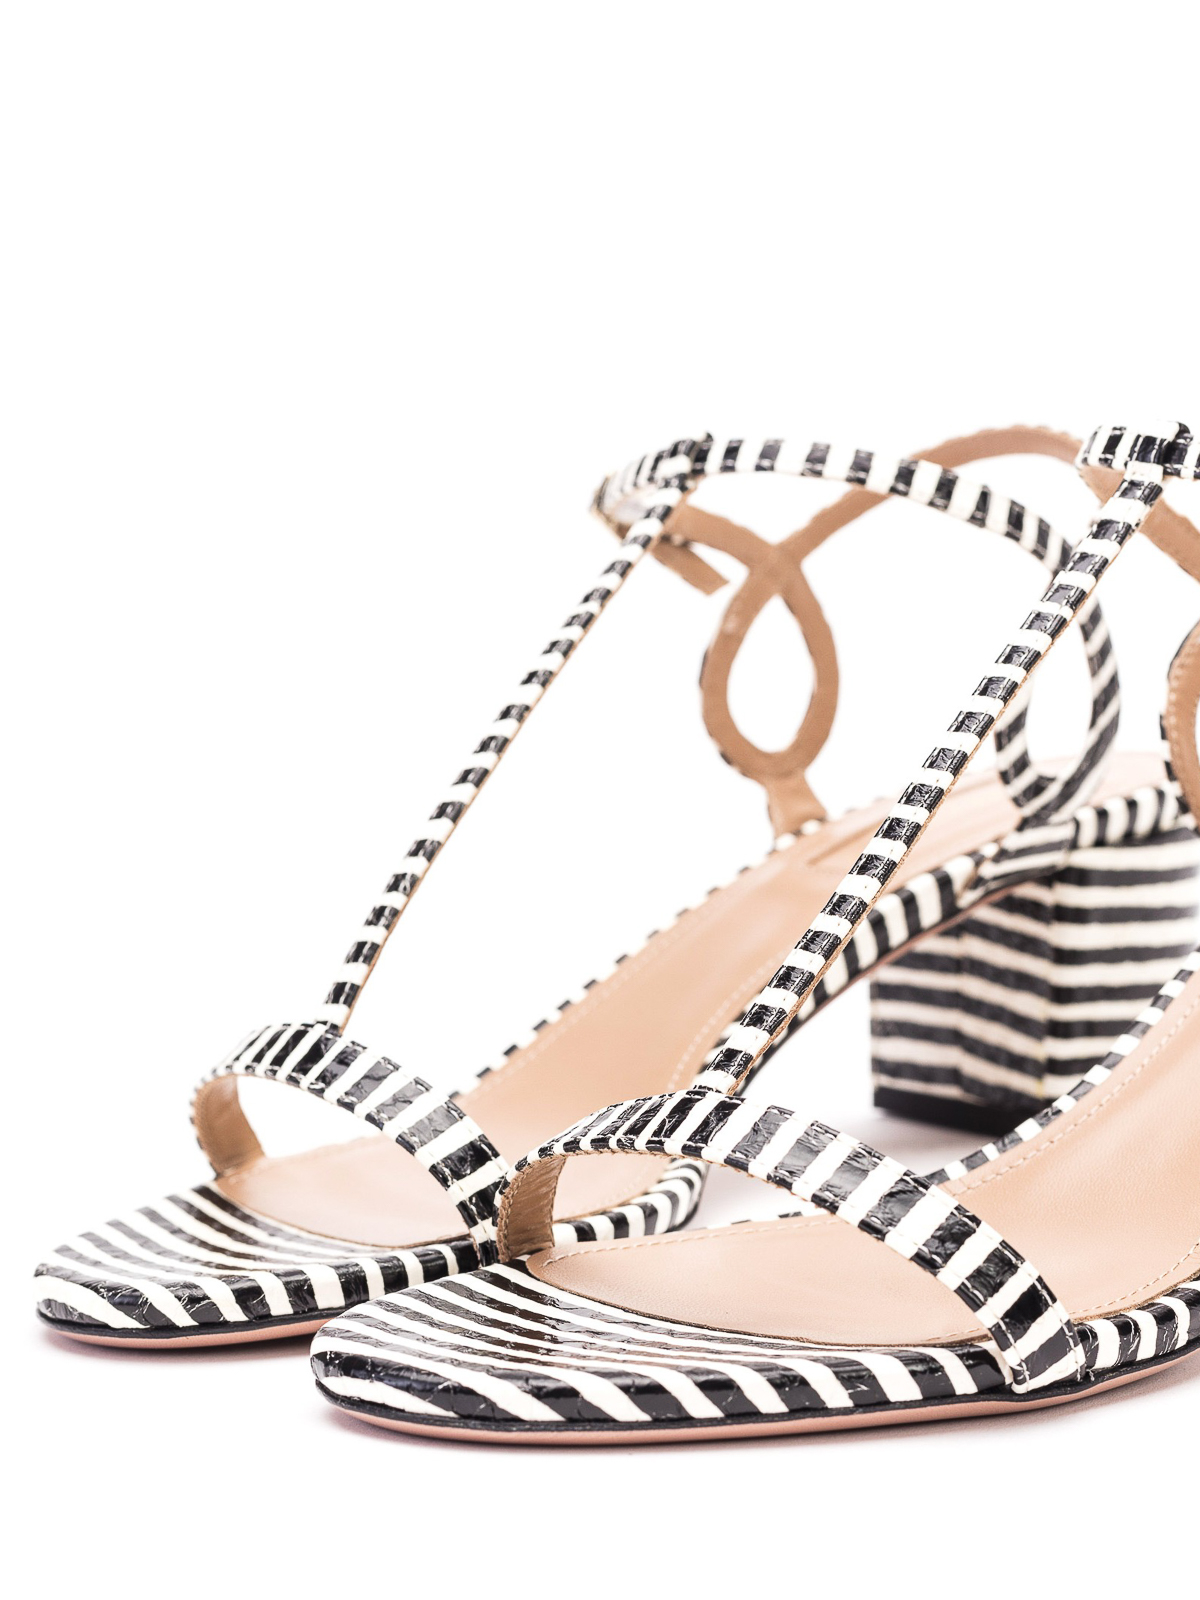 Black and white striped heeled sandals